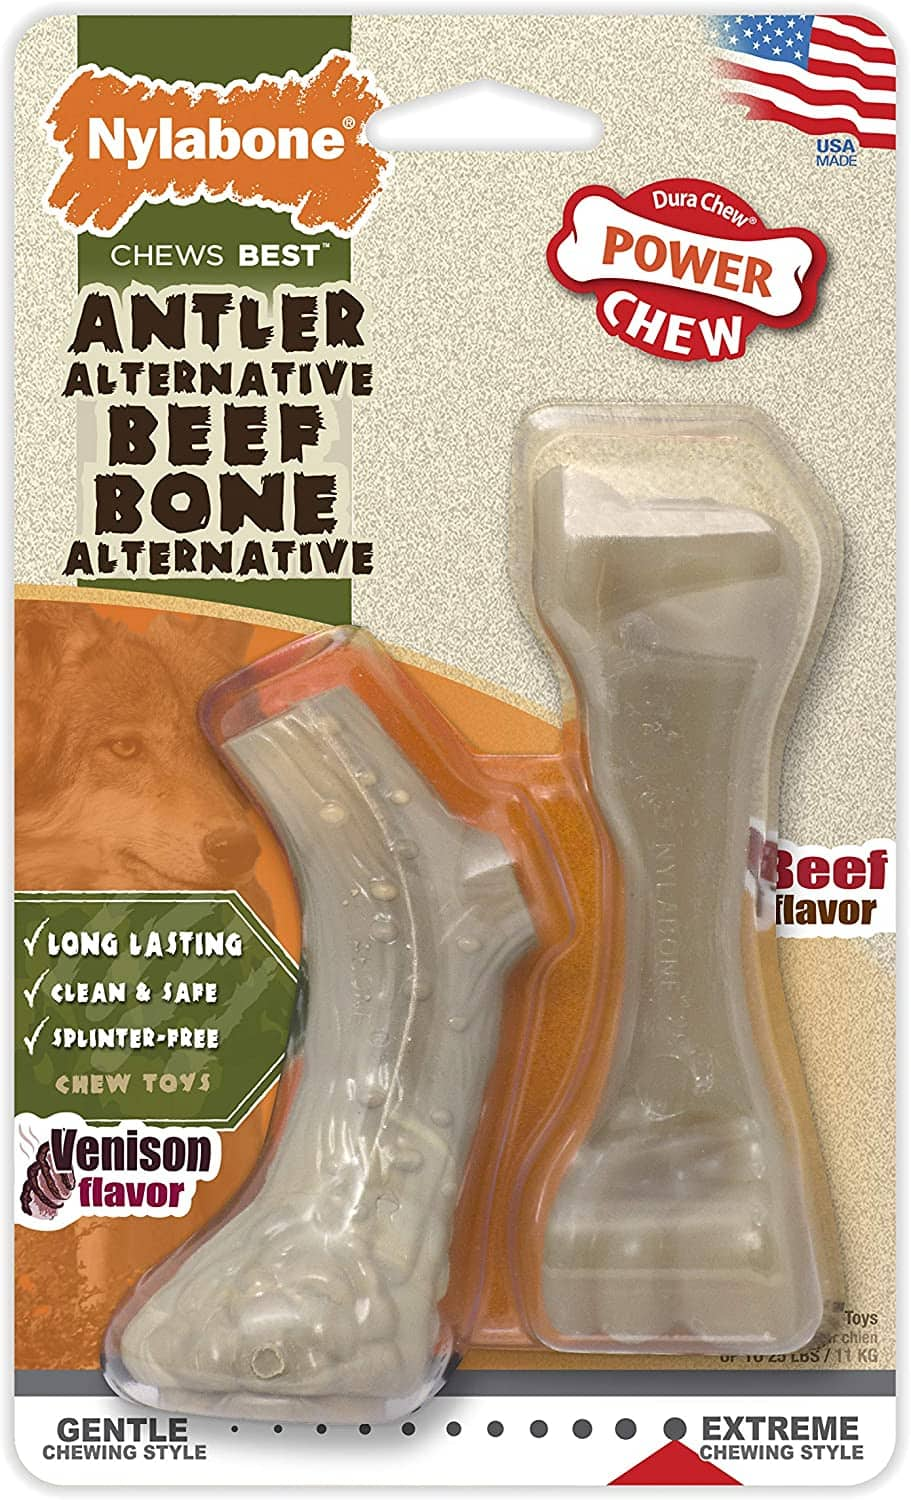 Nylabone Antler And Beef Faux Bone For Dogs $2.50 - FS w/ Prime